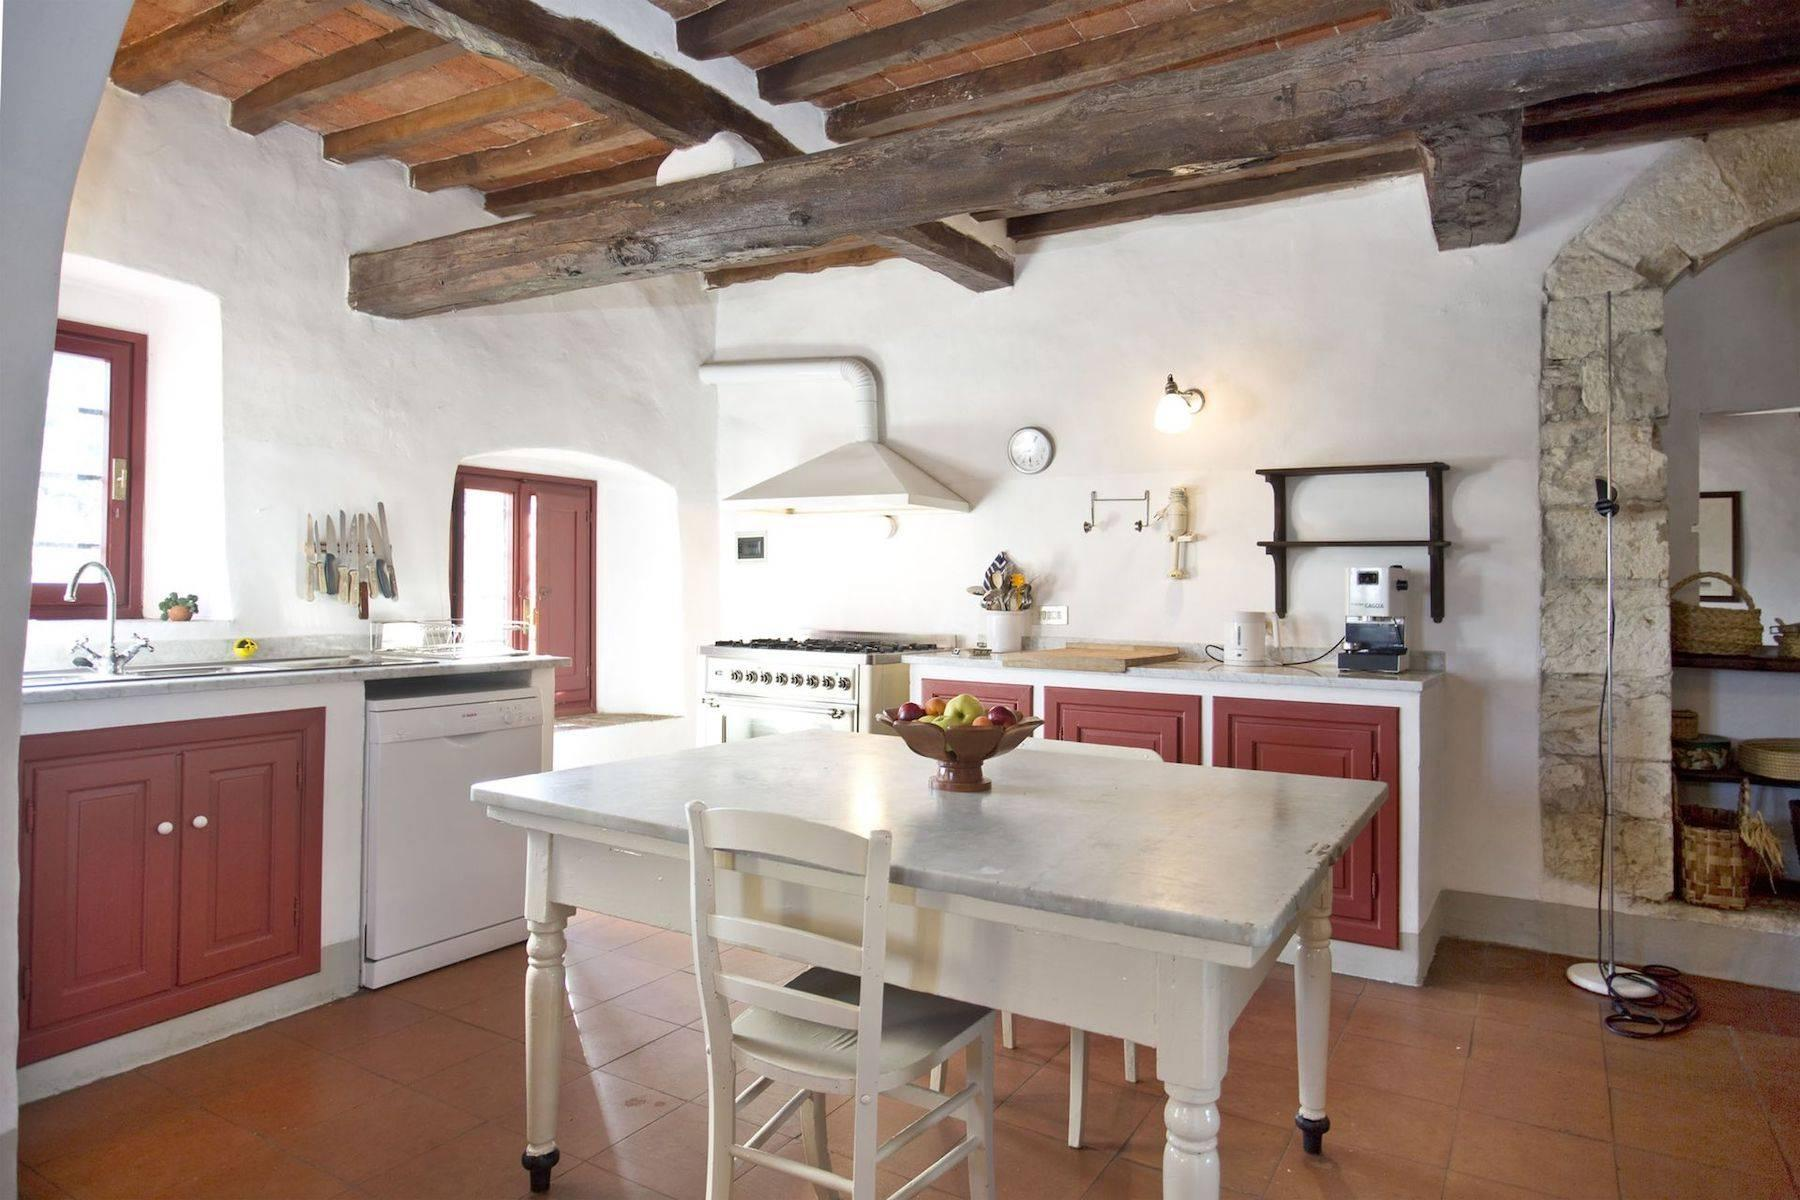 Beautiful charming countryside 6 bedroom villa with pool in Bagno a Ripoli - 11